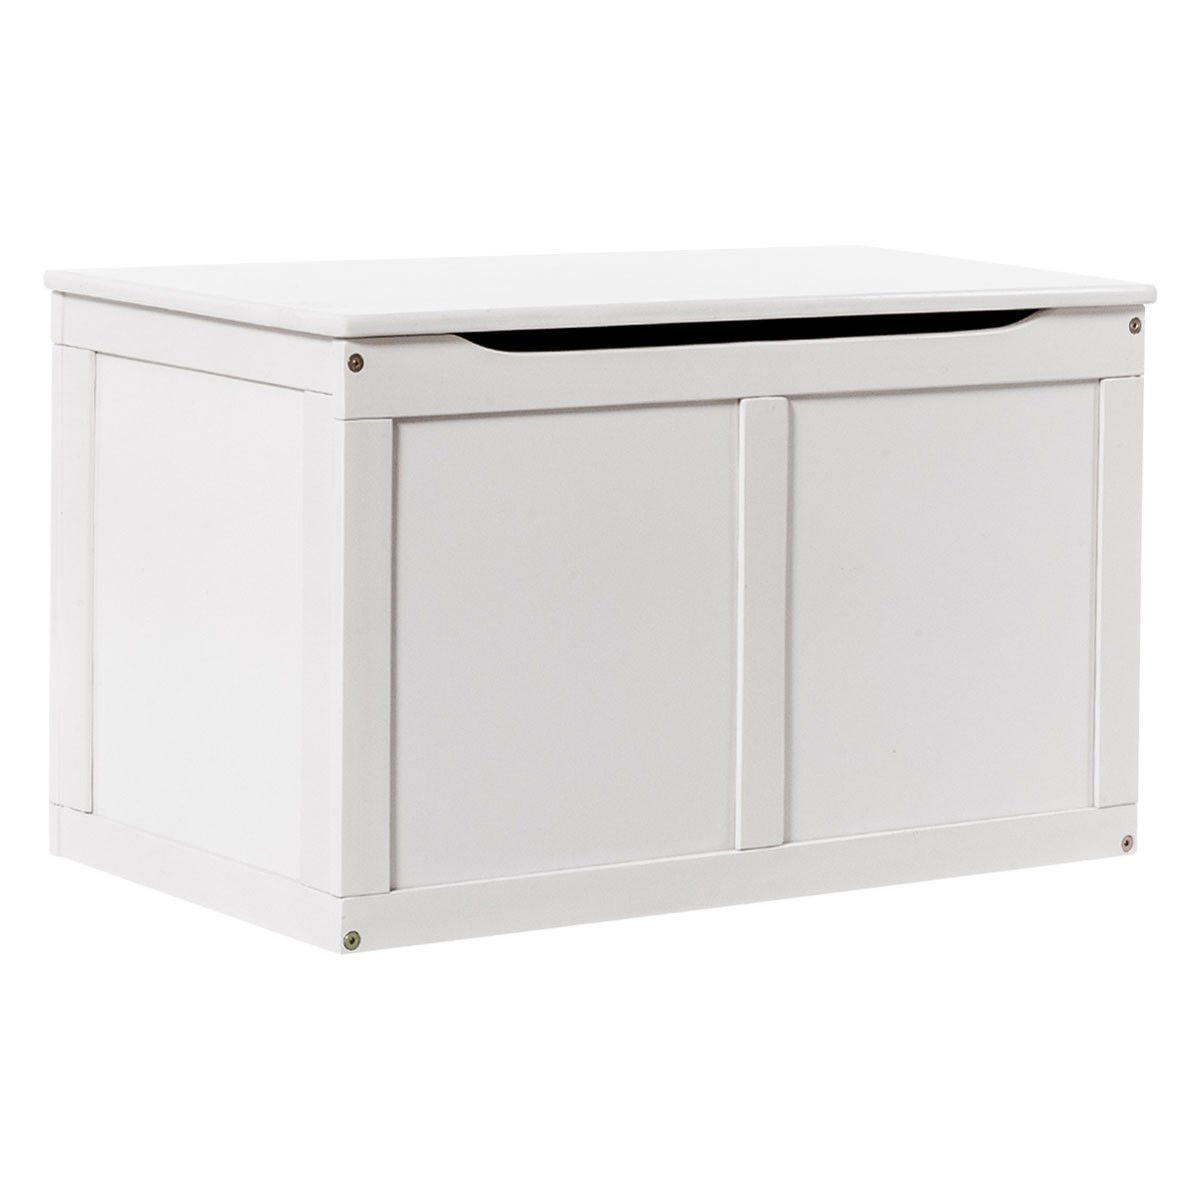 Costzon Wooden Toy Box, Entryway Sitting Bench Top, Toy Storage Chest Organizer With 2 Safety Hinge & Lid for Kids (White)